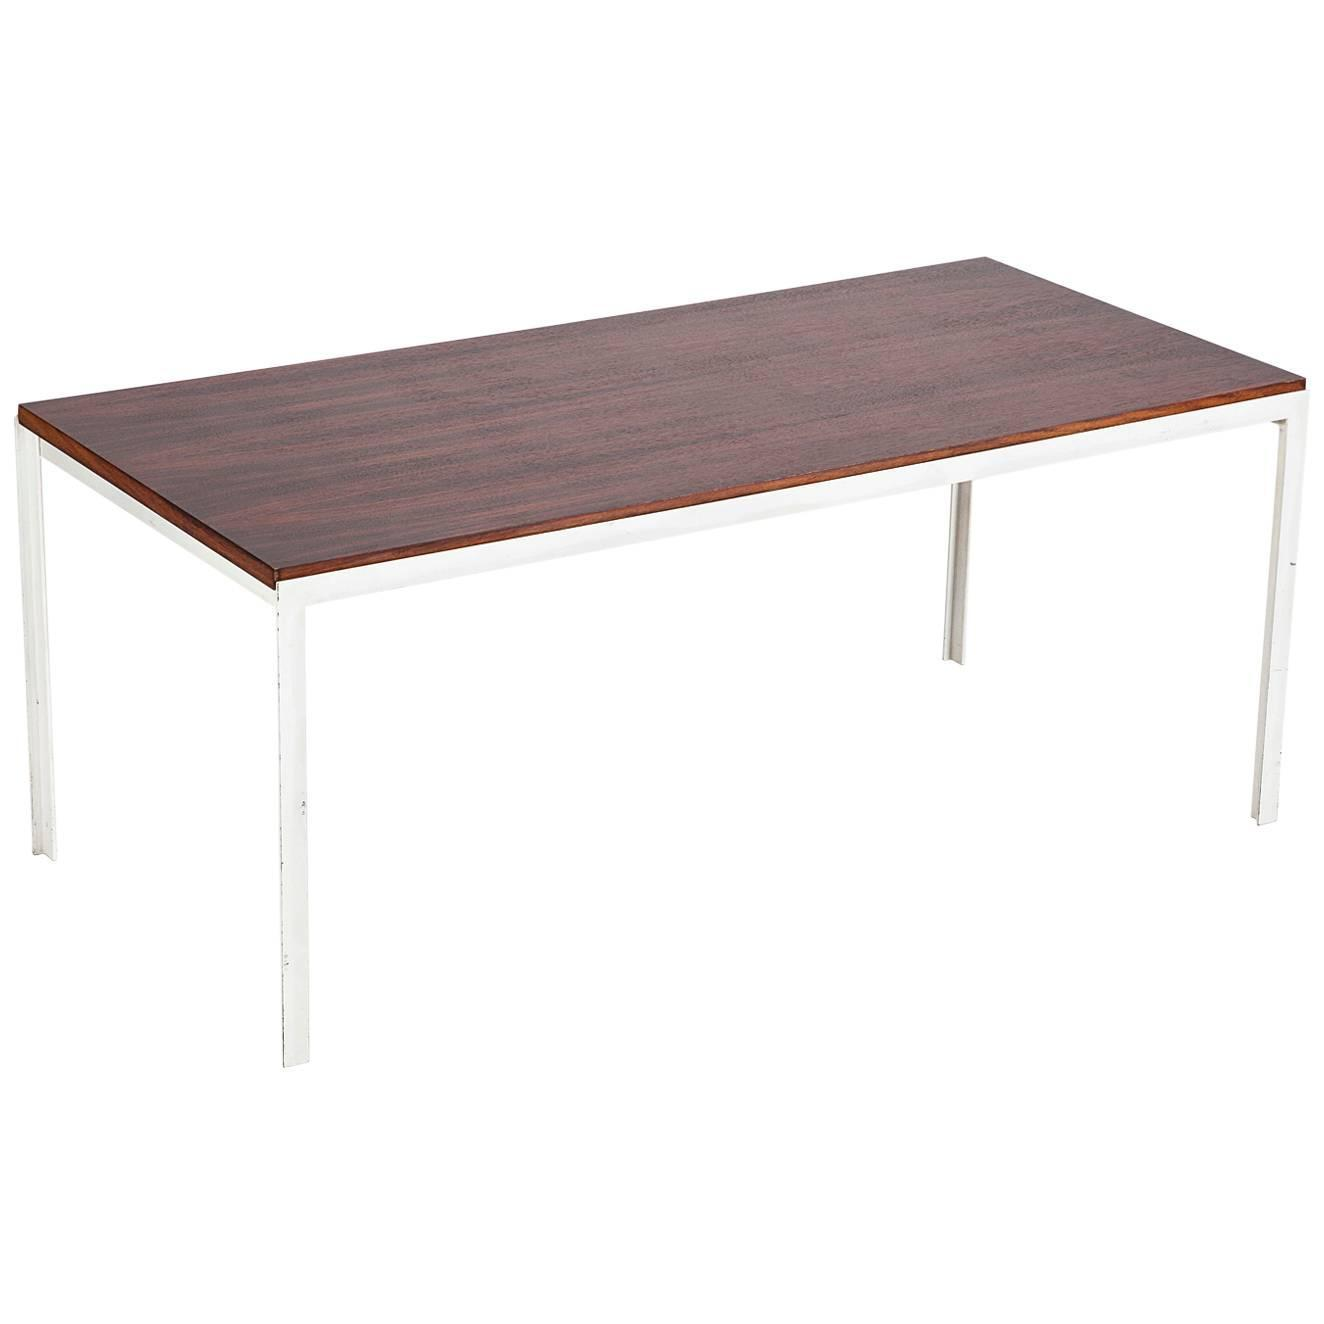 Florence knoll coffee table rosewood t angle iron 1956 Florence knoll coffee table